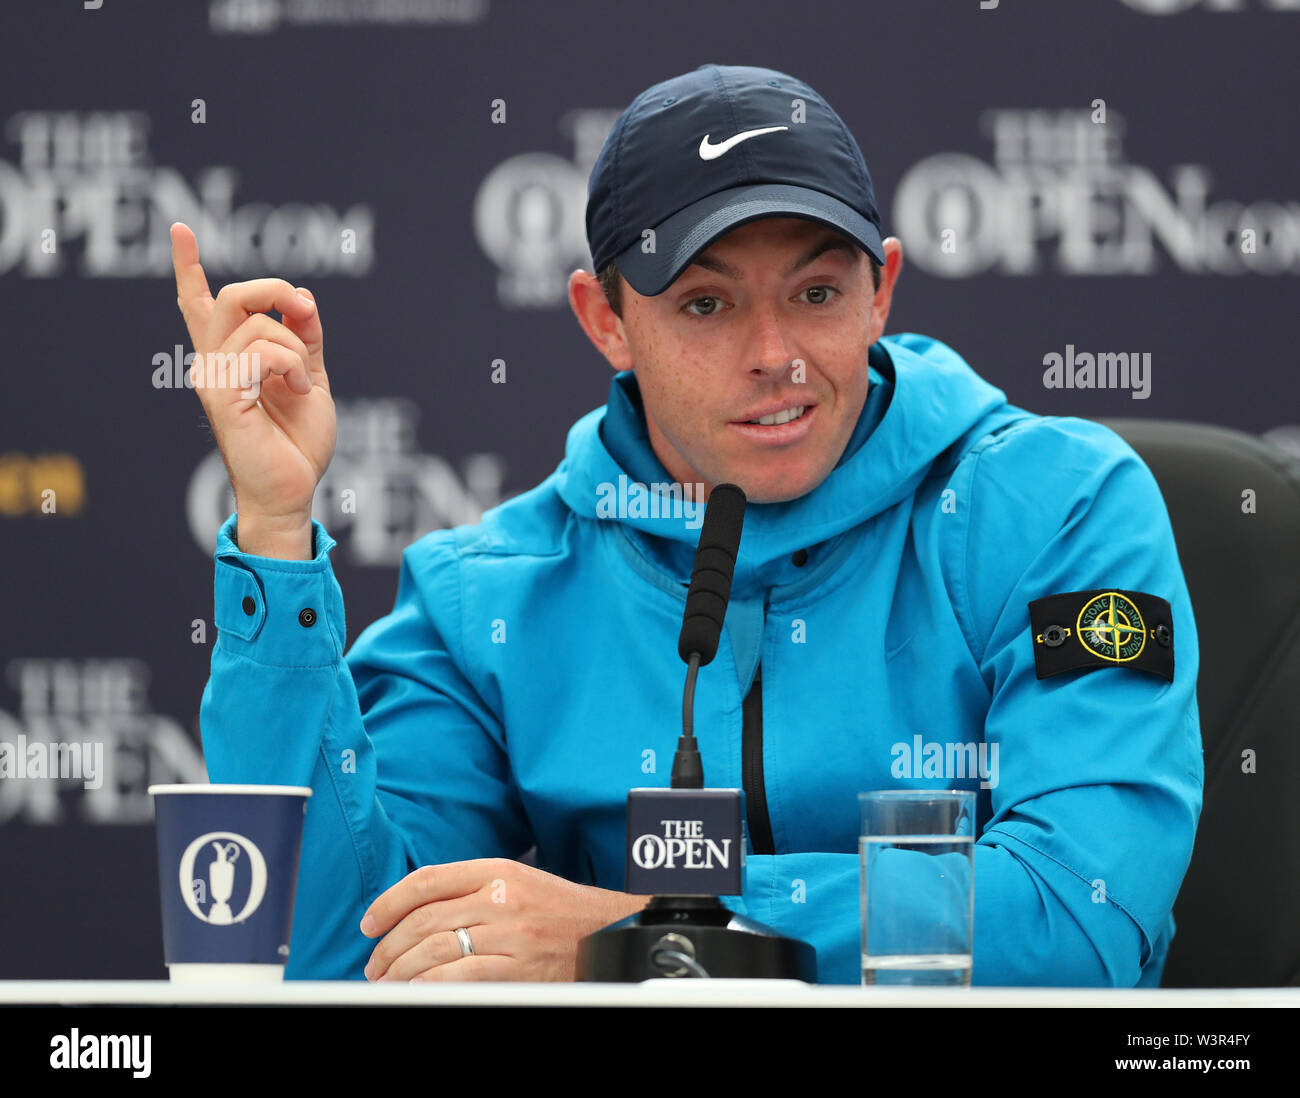 Portrush, County Antrim, Northern Ireland. 17th July 2019. The 148th Open Golf Championship, Royal Portrush Golf Club, Practice day ; Rory McIlroy (NIR) answers a question during his press conference interview Credit: Action Plus Sports Images/Alamy Live News Stock Photo